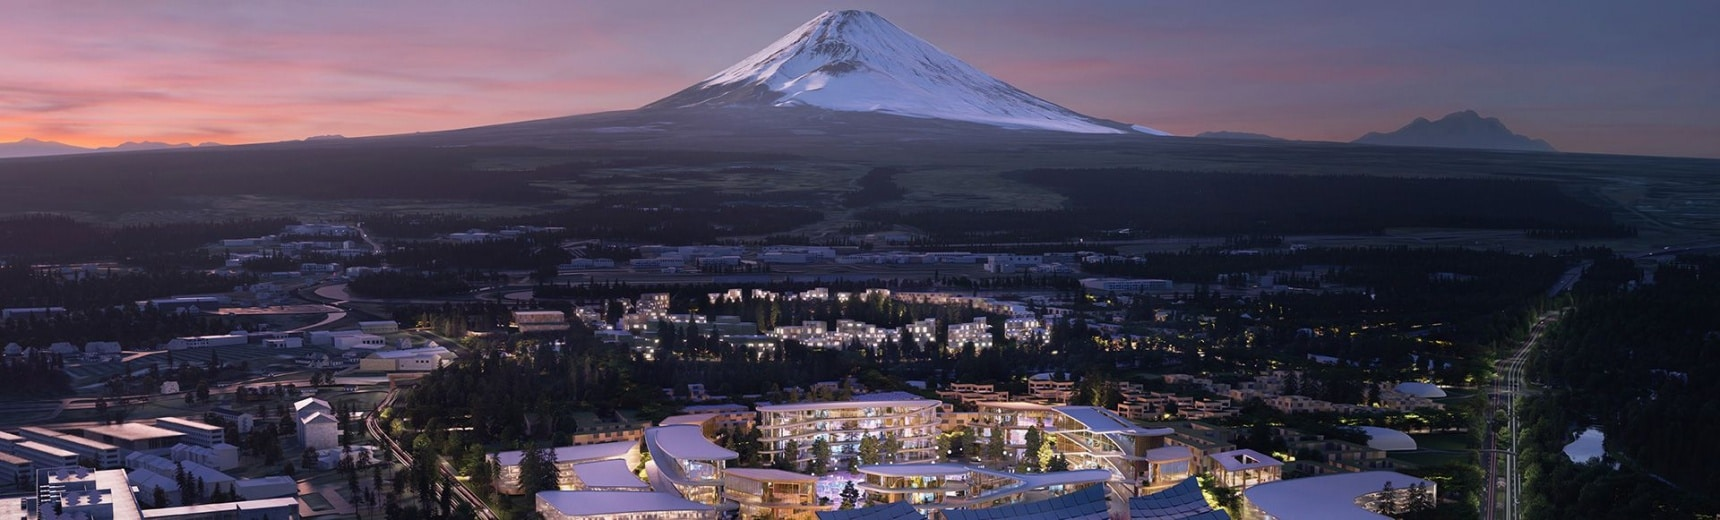 Toyota's Future City Near Mount Fuji